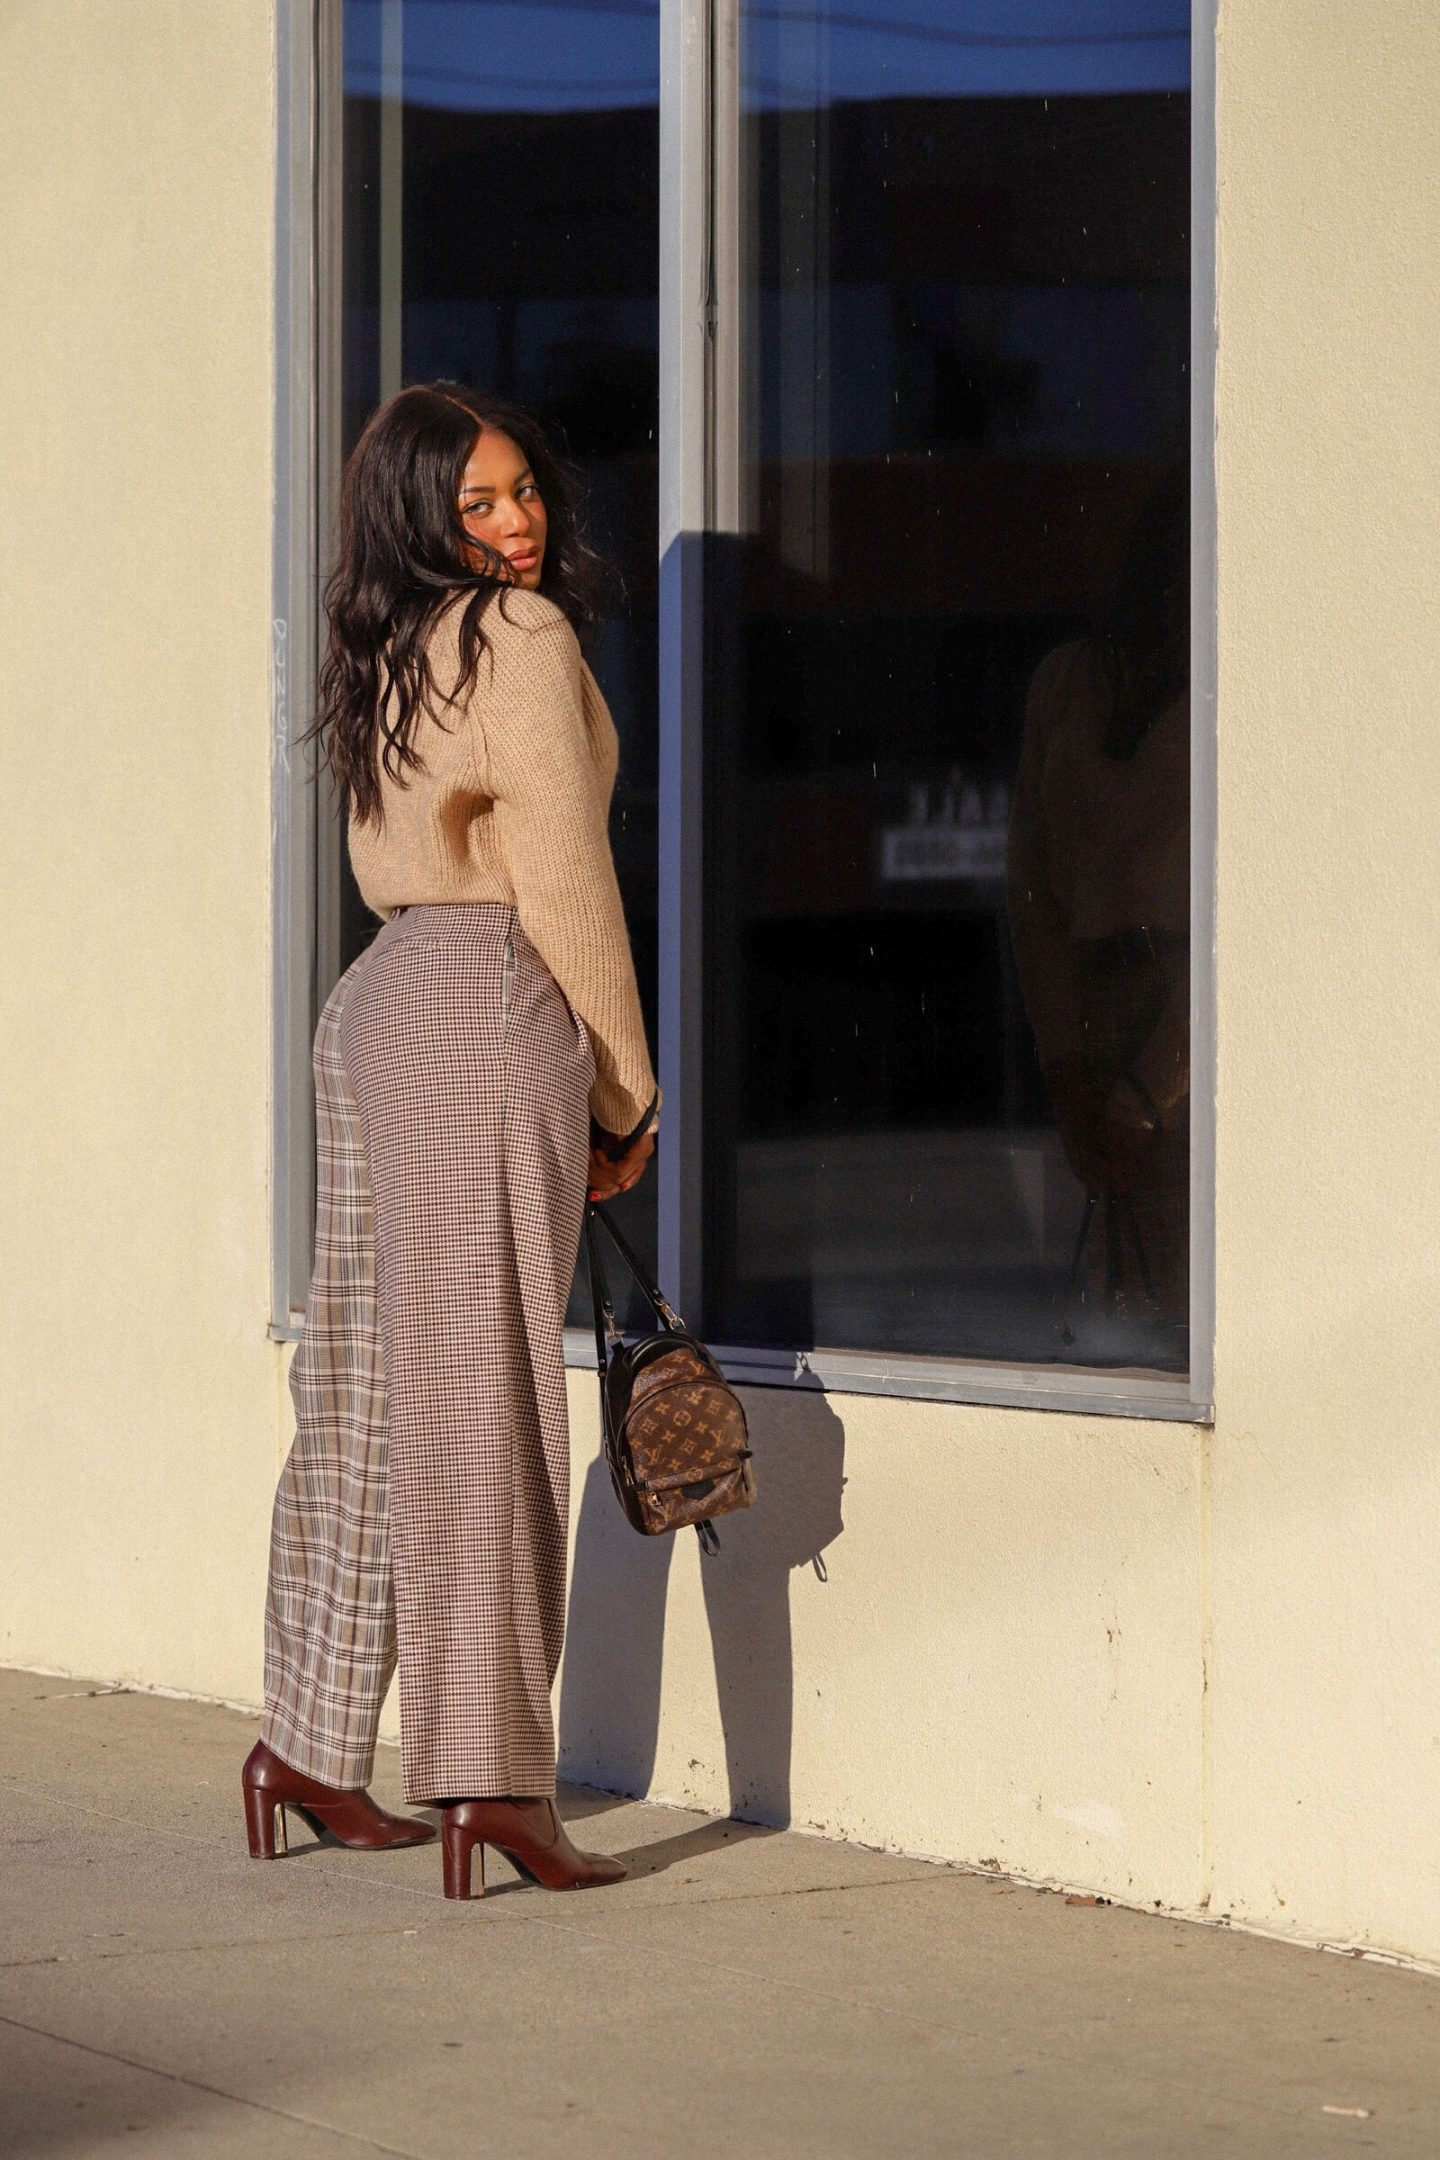 Kaye Bassey, an influencer, modeling a fall look from Nordstrom featuring a beige sweater and plaid pants.